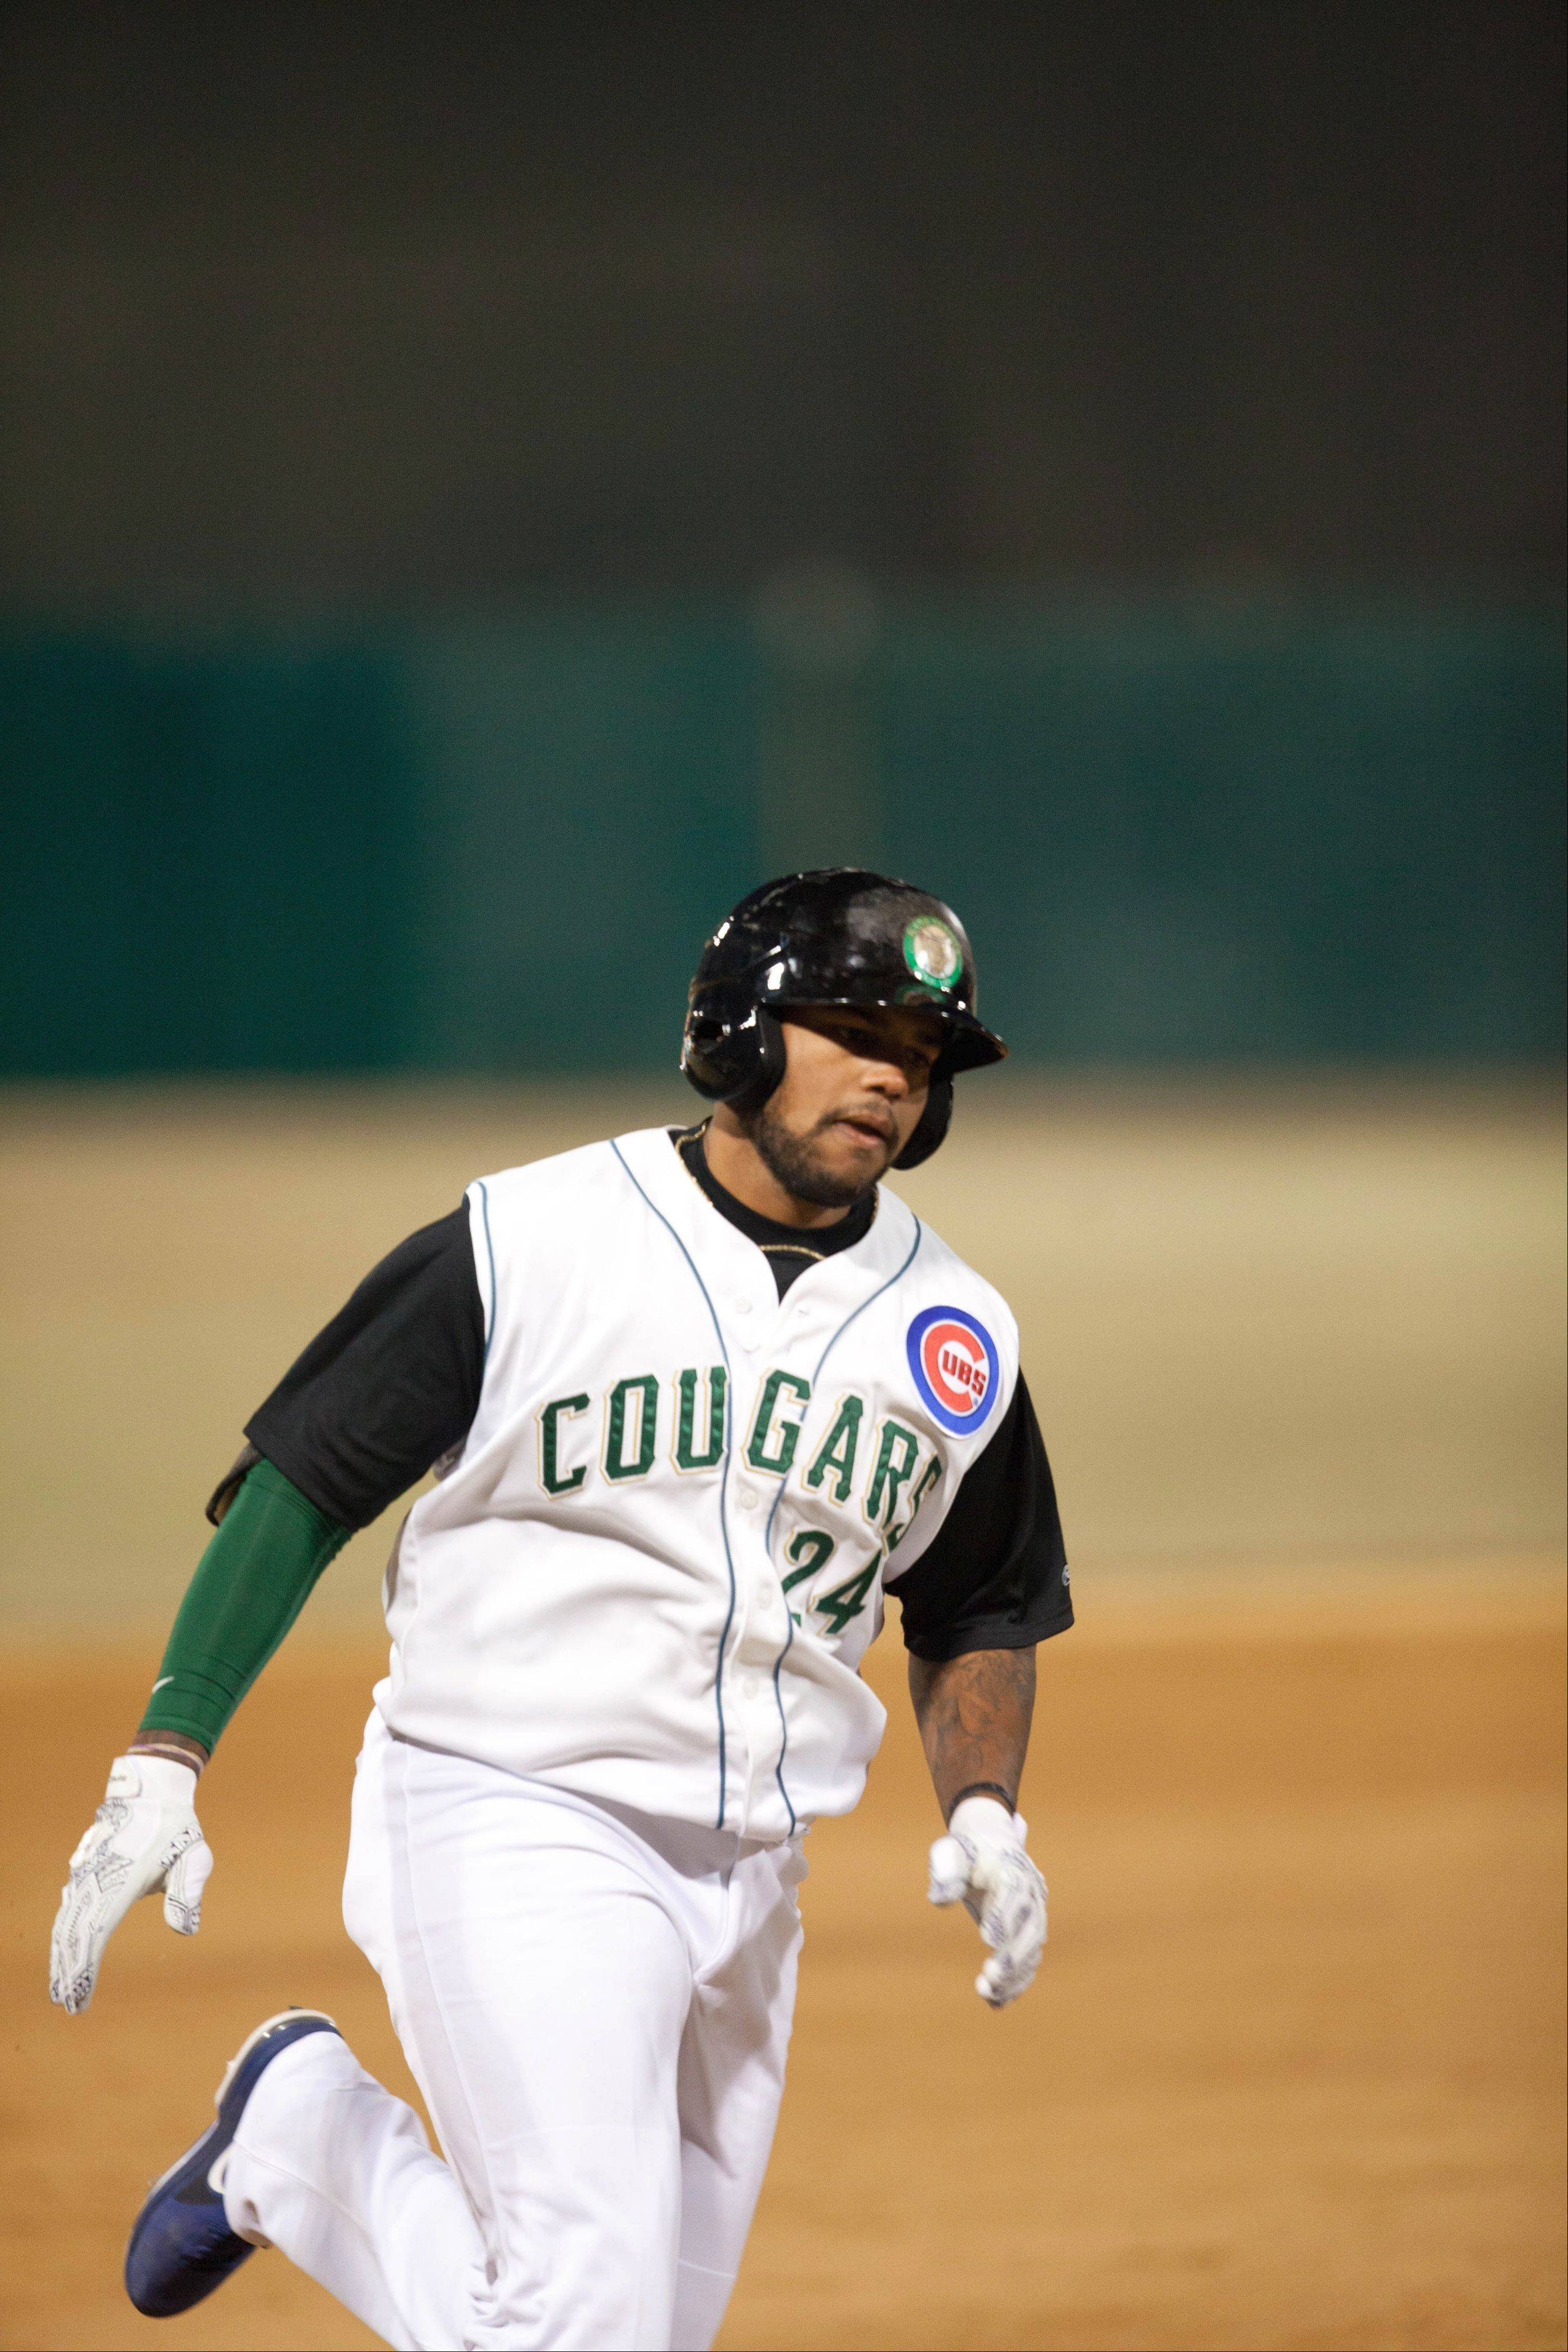 Rock Shoulders, an outfielder/first baseman for the Kane County Cougars, leads the Midwest League in homers with 12 through Tuesday's action.